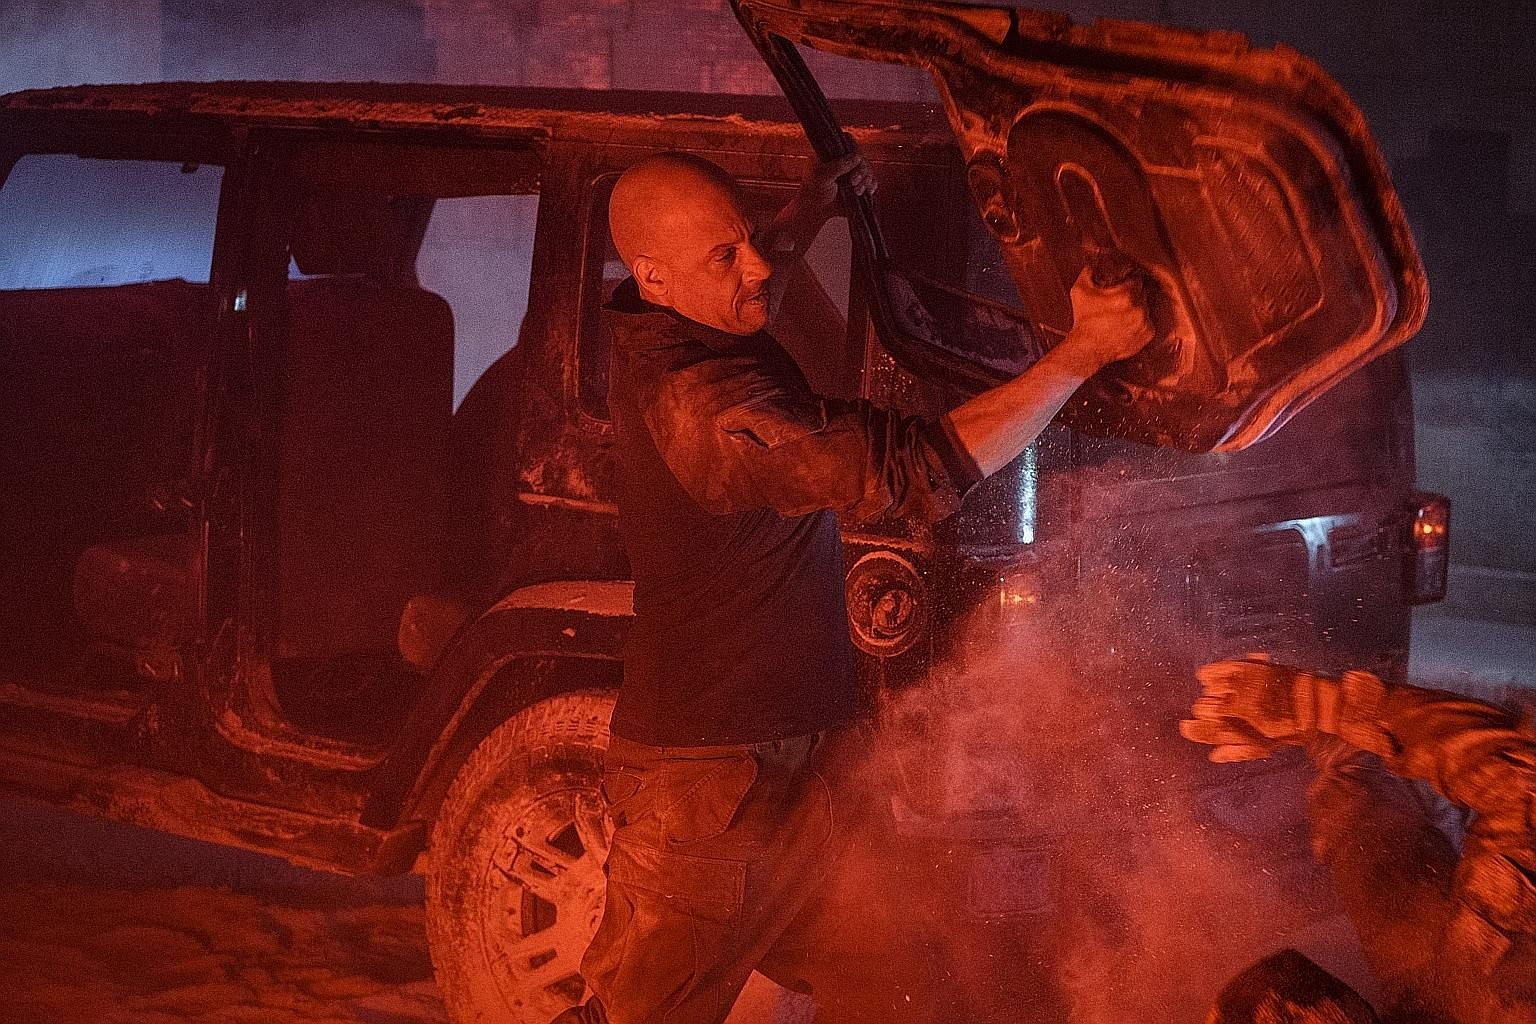 Vin Diesel stars in Bloodshot as a soldier brought back from the dead with super strength.